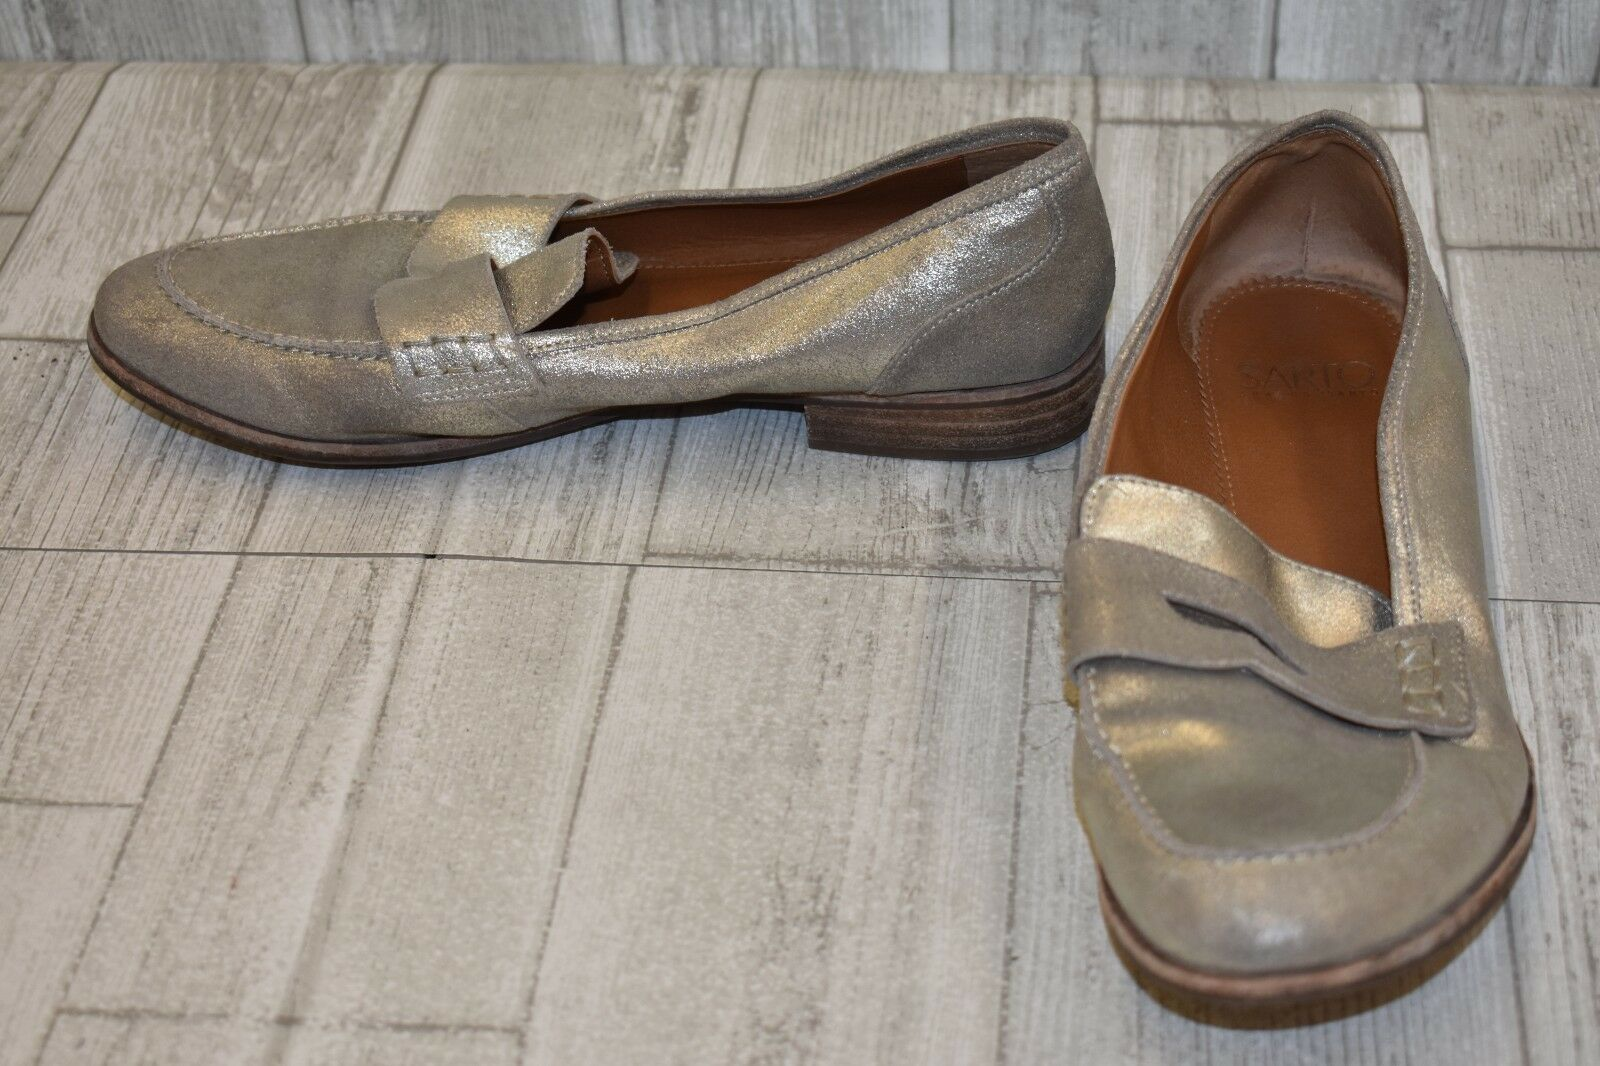 c744829d074 UPC 727679647724 product image for Franco Sarto Jolette By Sarto Loafer -  Women s Size 9m ...